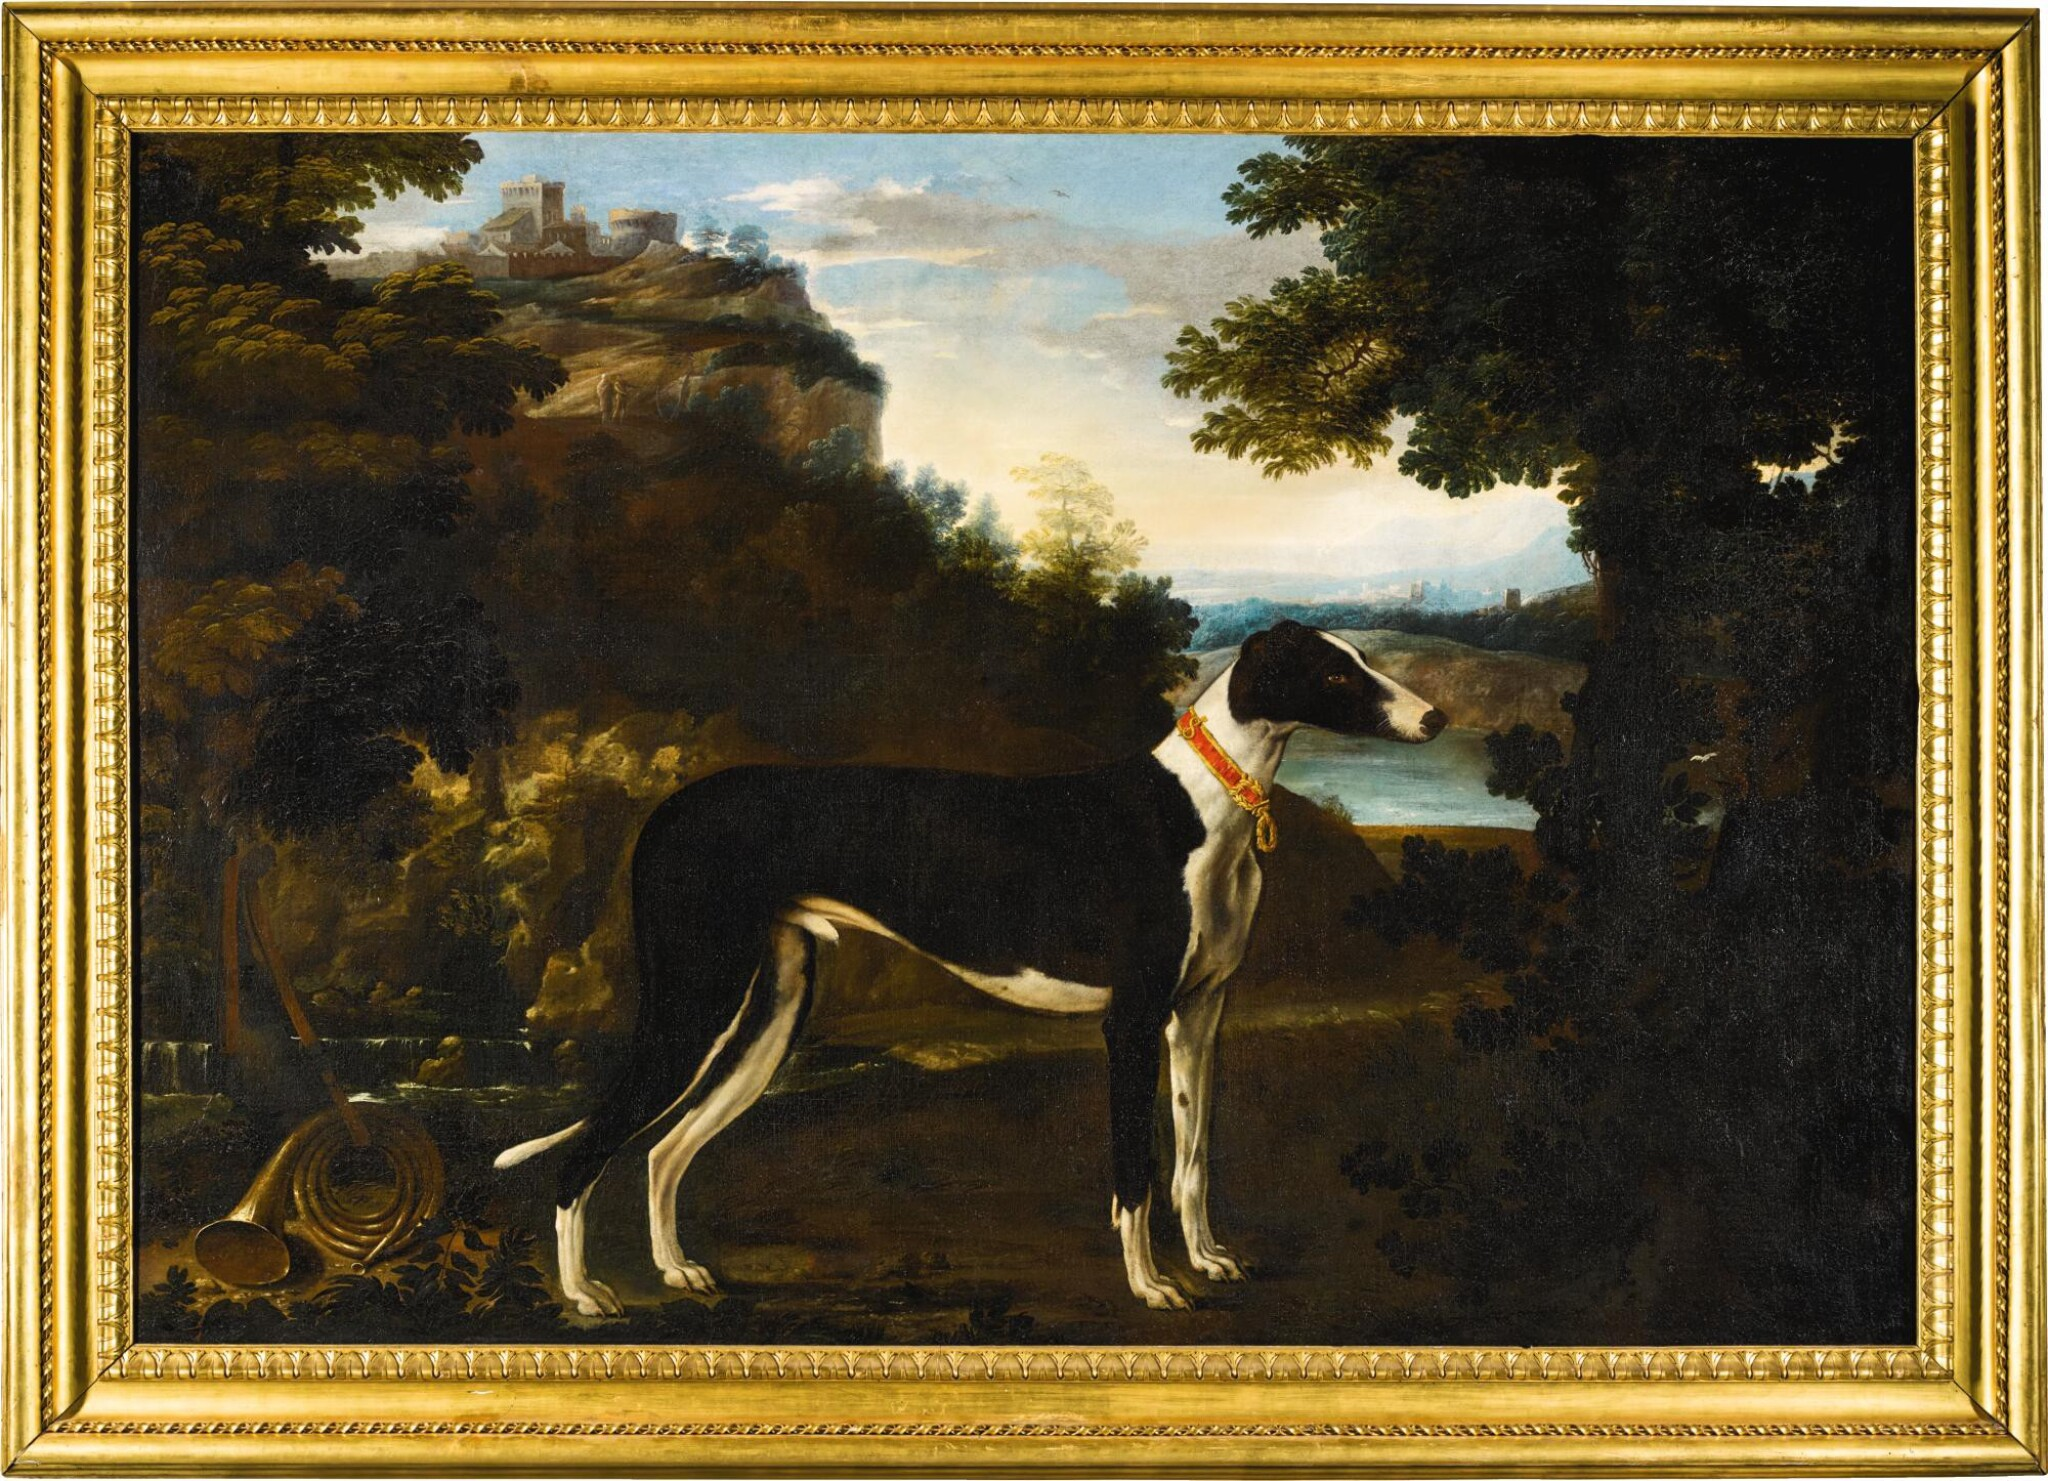 View full screen - View 1 of Lot 17. MICHELE PACE, CALLED MICHELANGELO DEL CAMPIDOGLIO   Portrait of a black and white greyhound belonging to the Chigi family, standing in a mountainous landscape   米謝爾・佩斯 - 或稱米開朗基羅・德・坎皮多里奧  《基吉家族之黑白色獵犬站於山景中的肖像》.